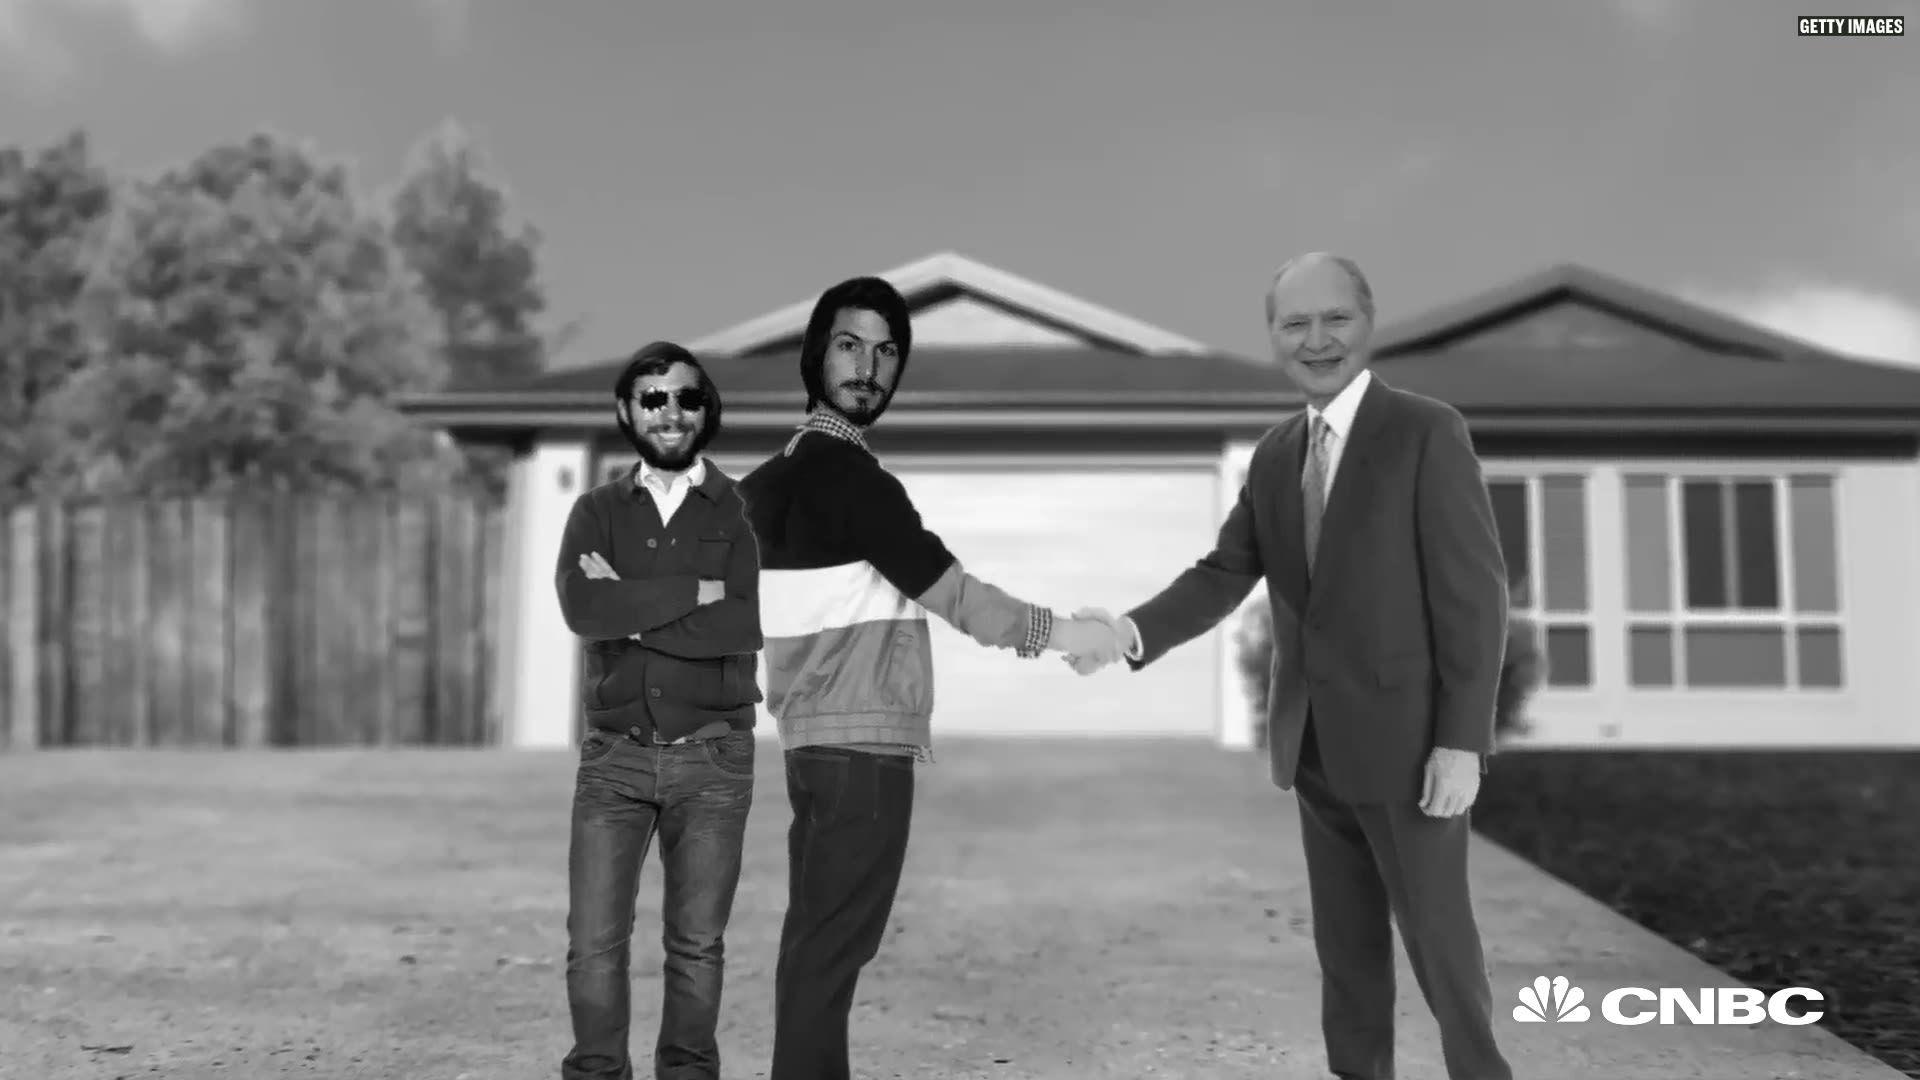 Apple's third co-founder Ronald Wayne sold his stake for $800